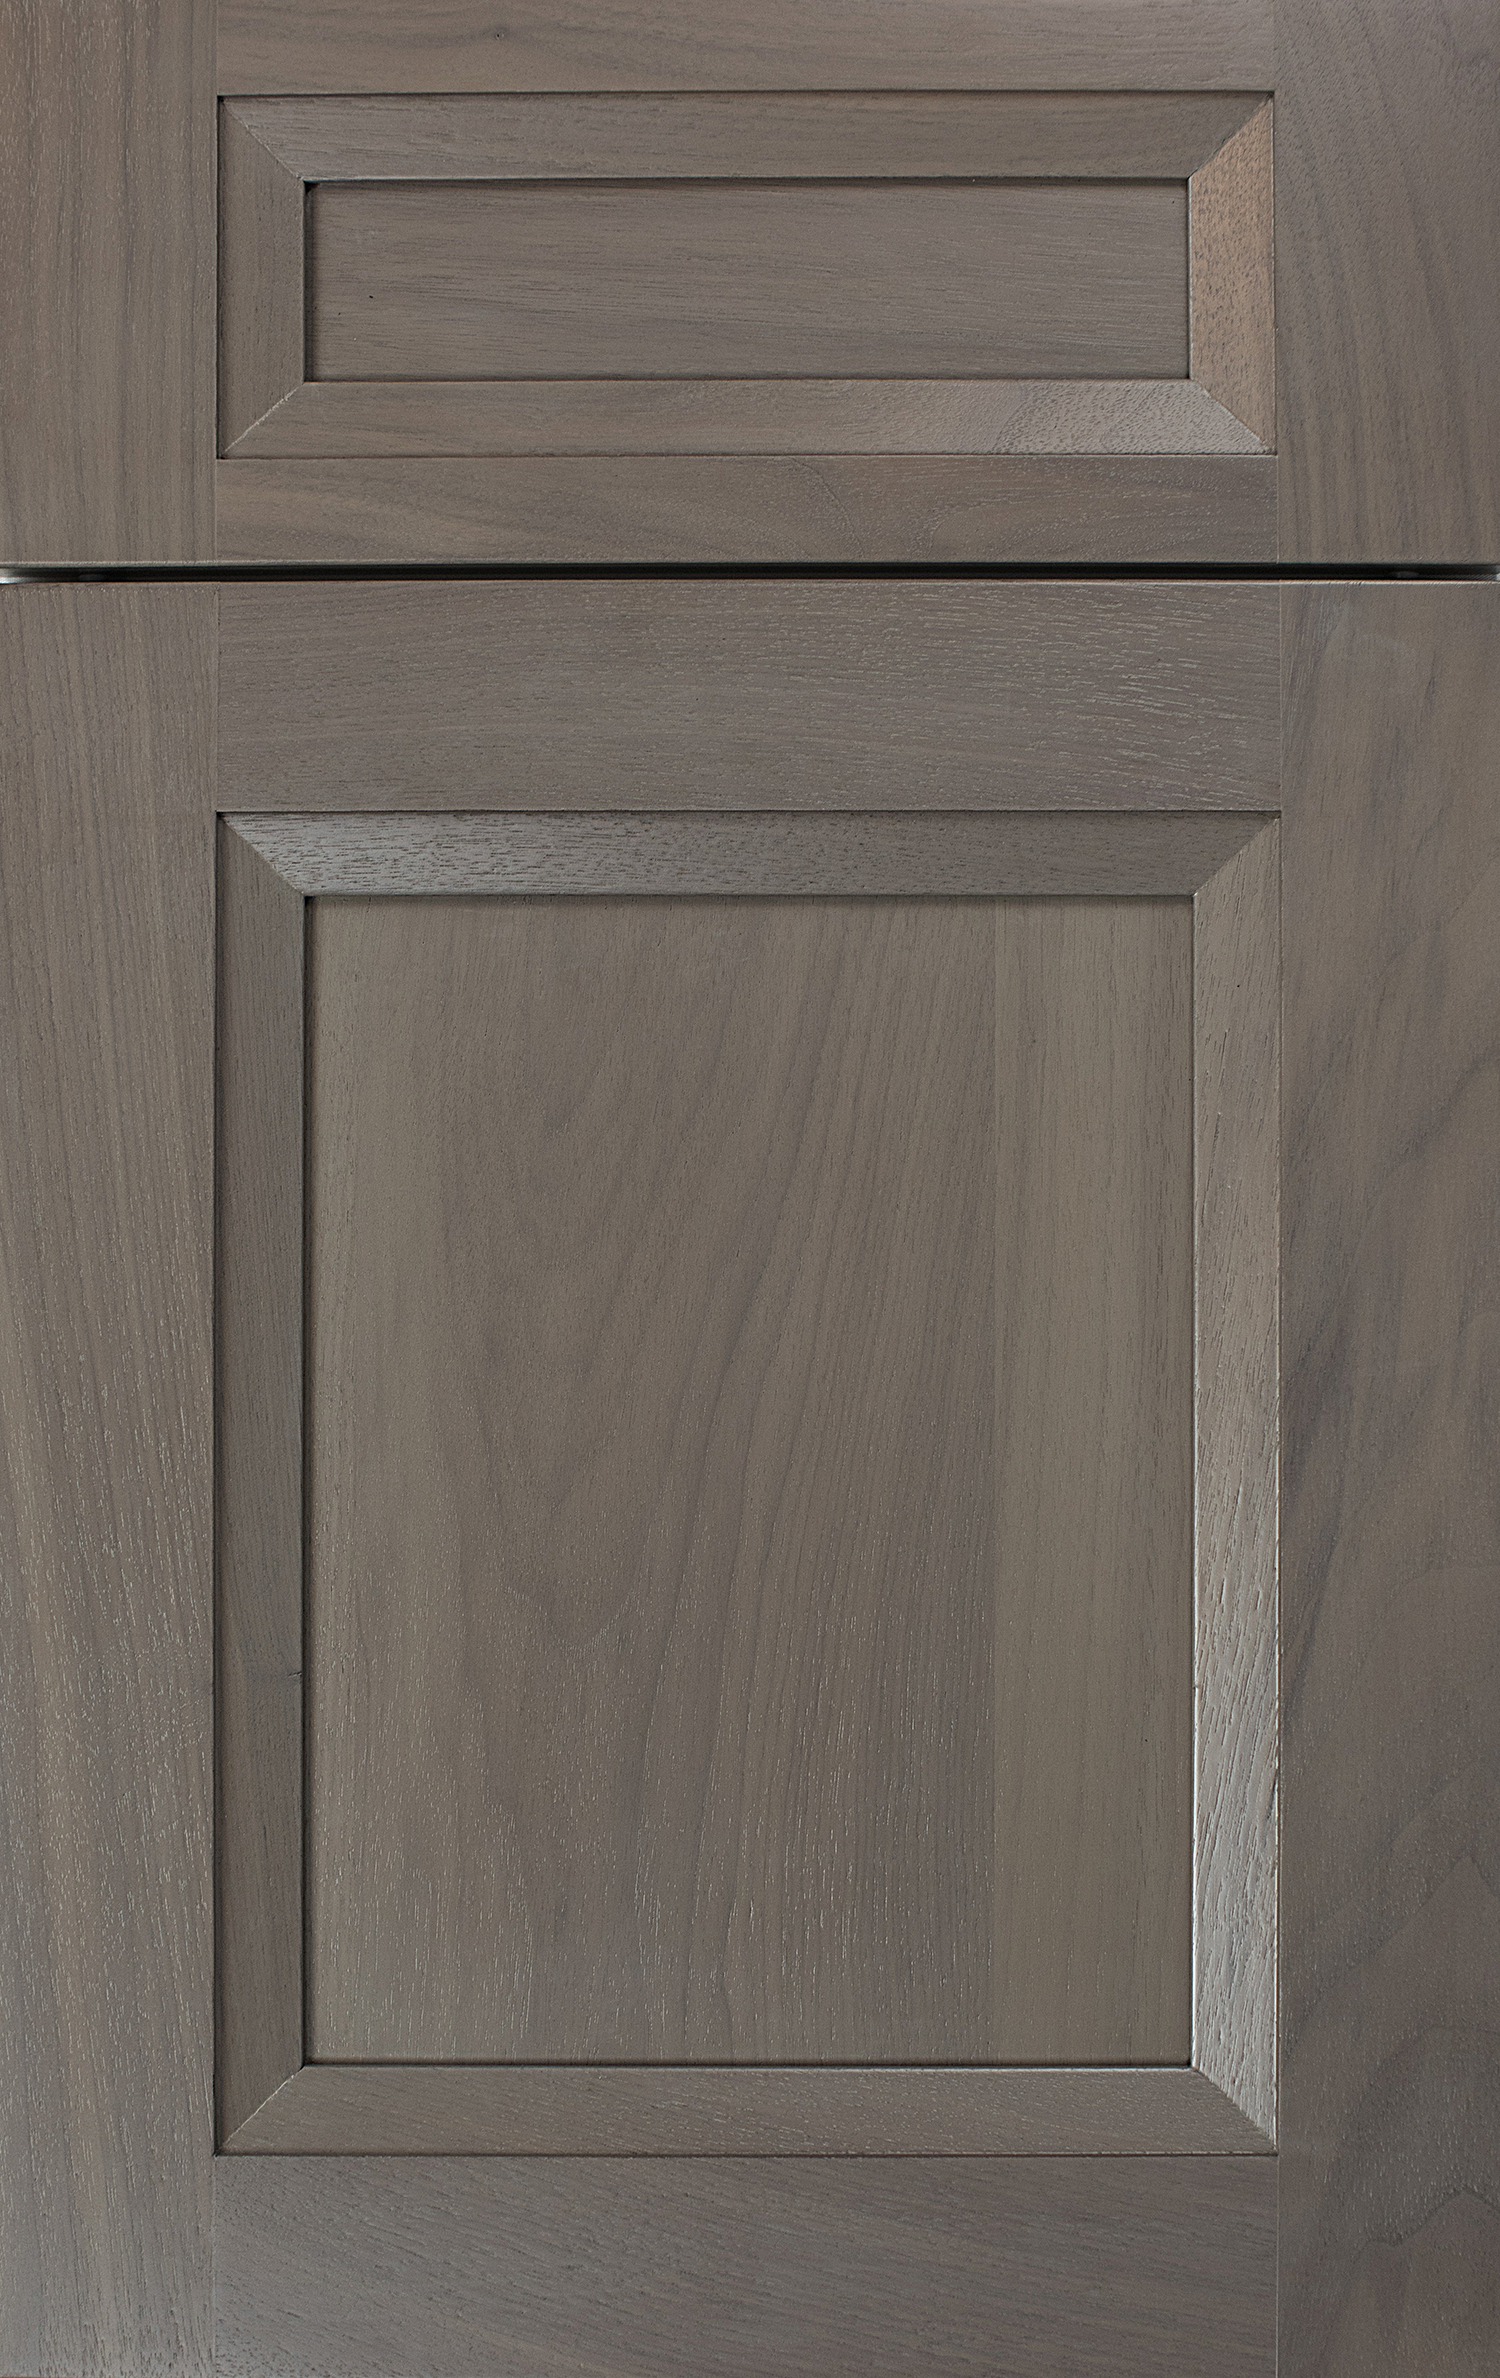 whitney ii recessed door style by woodmode shown in matte shale finish on walnut